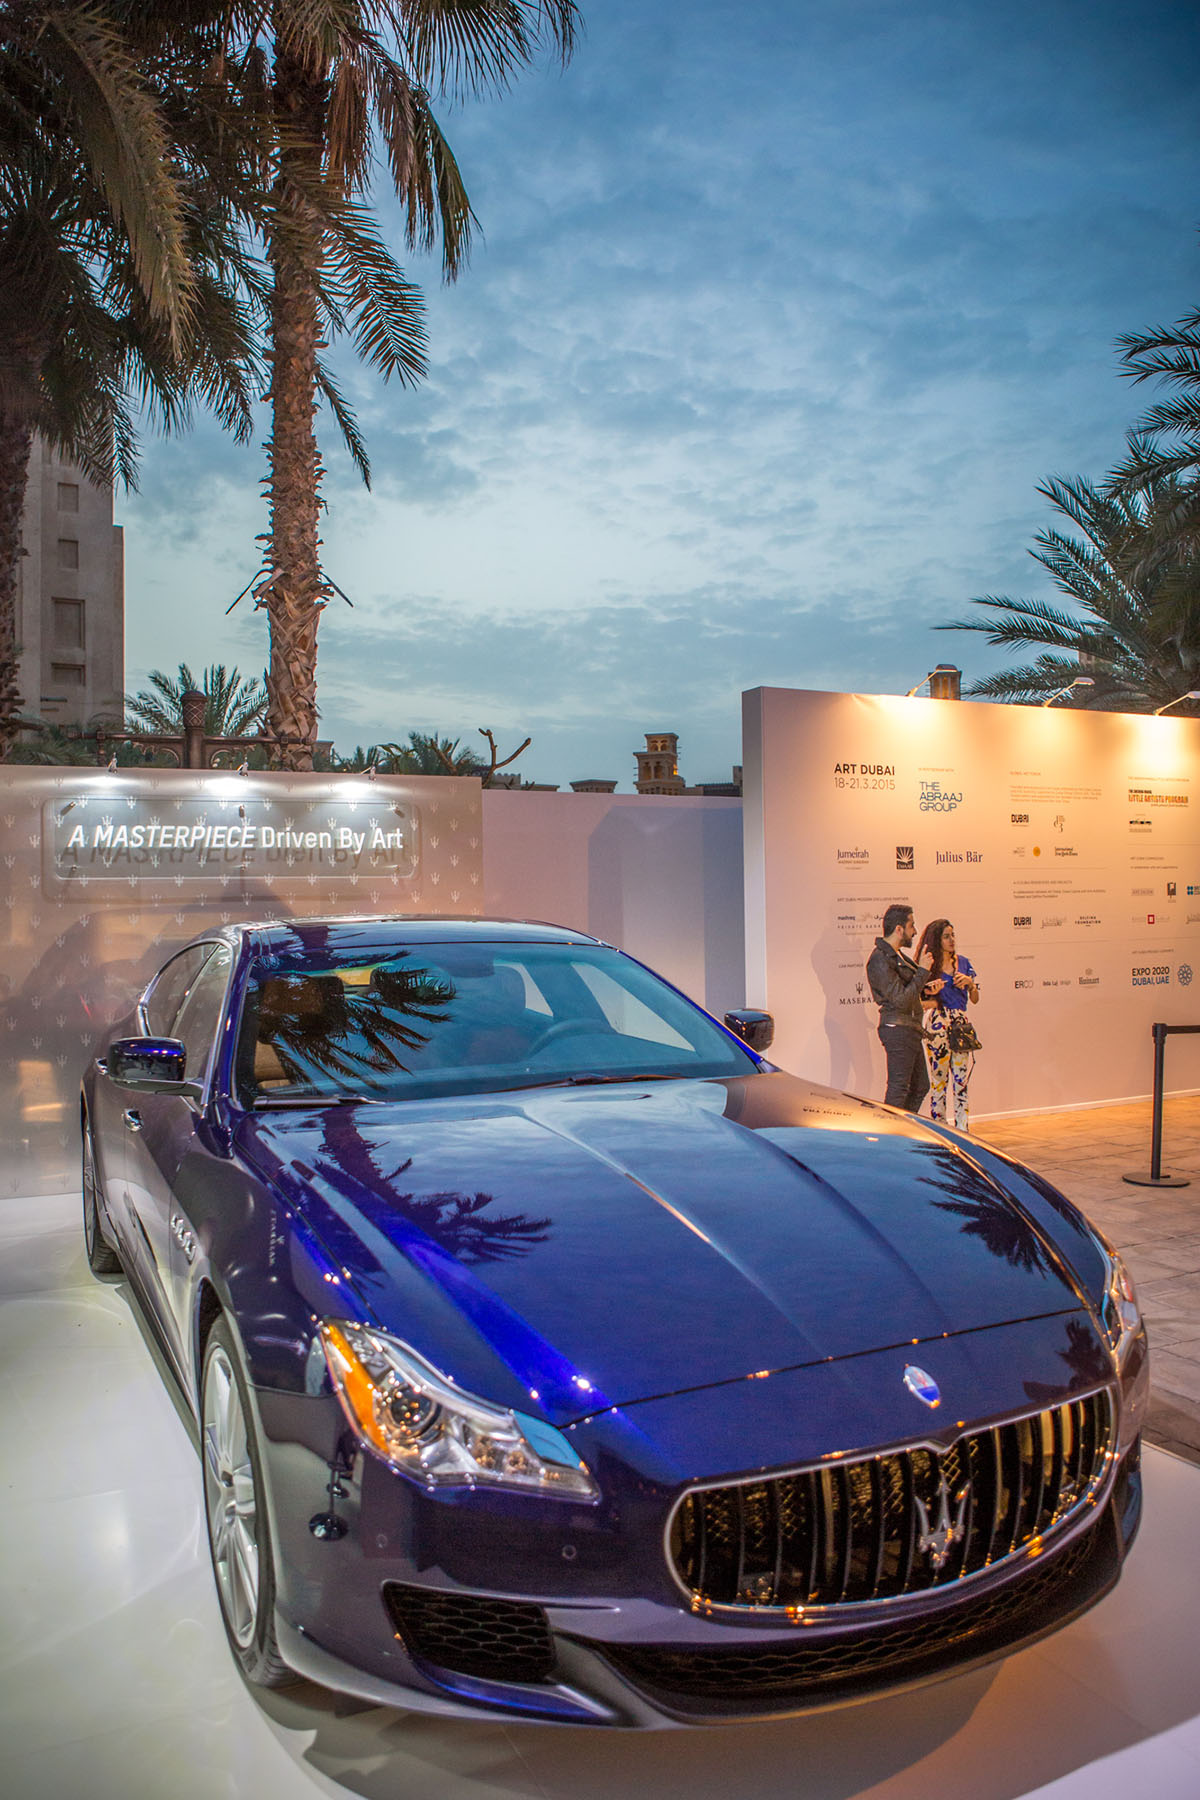 Maserati on display at Art Dubai by Loesje Kessels Fashion Photographer